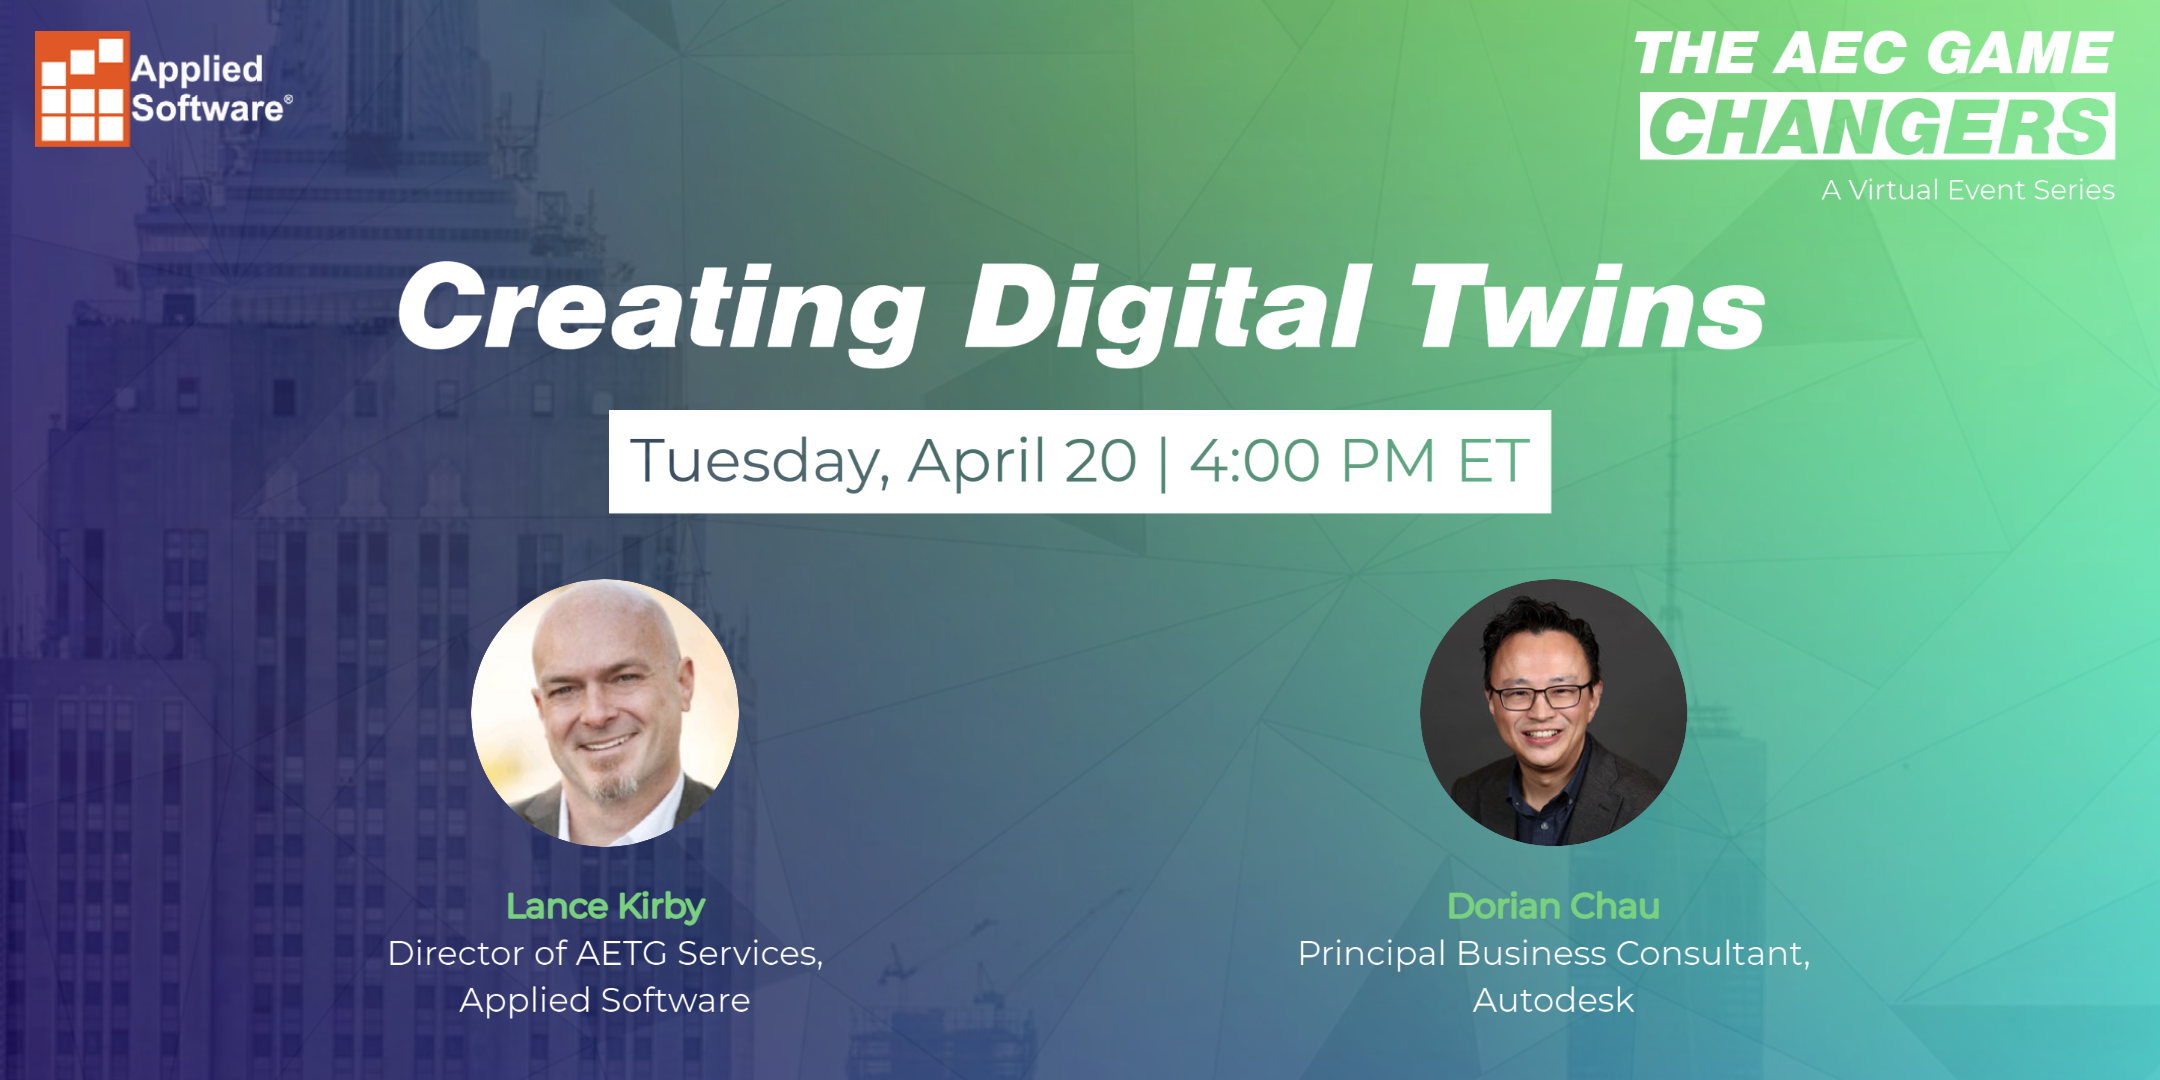 AEC Game Changers Digital Twins